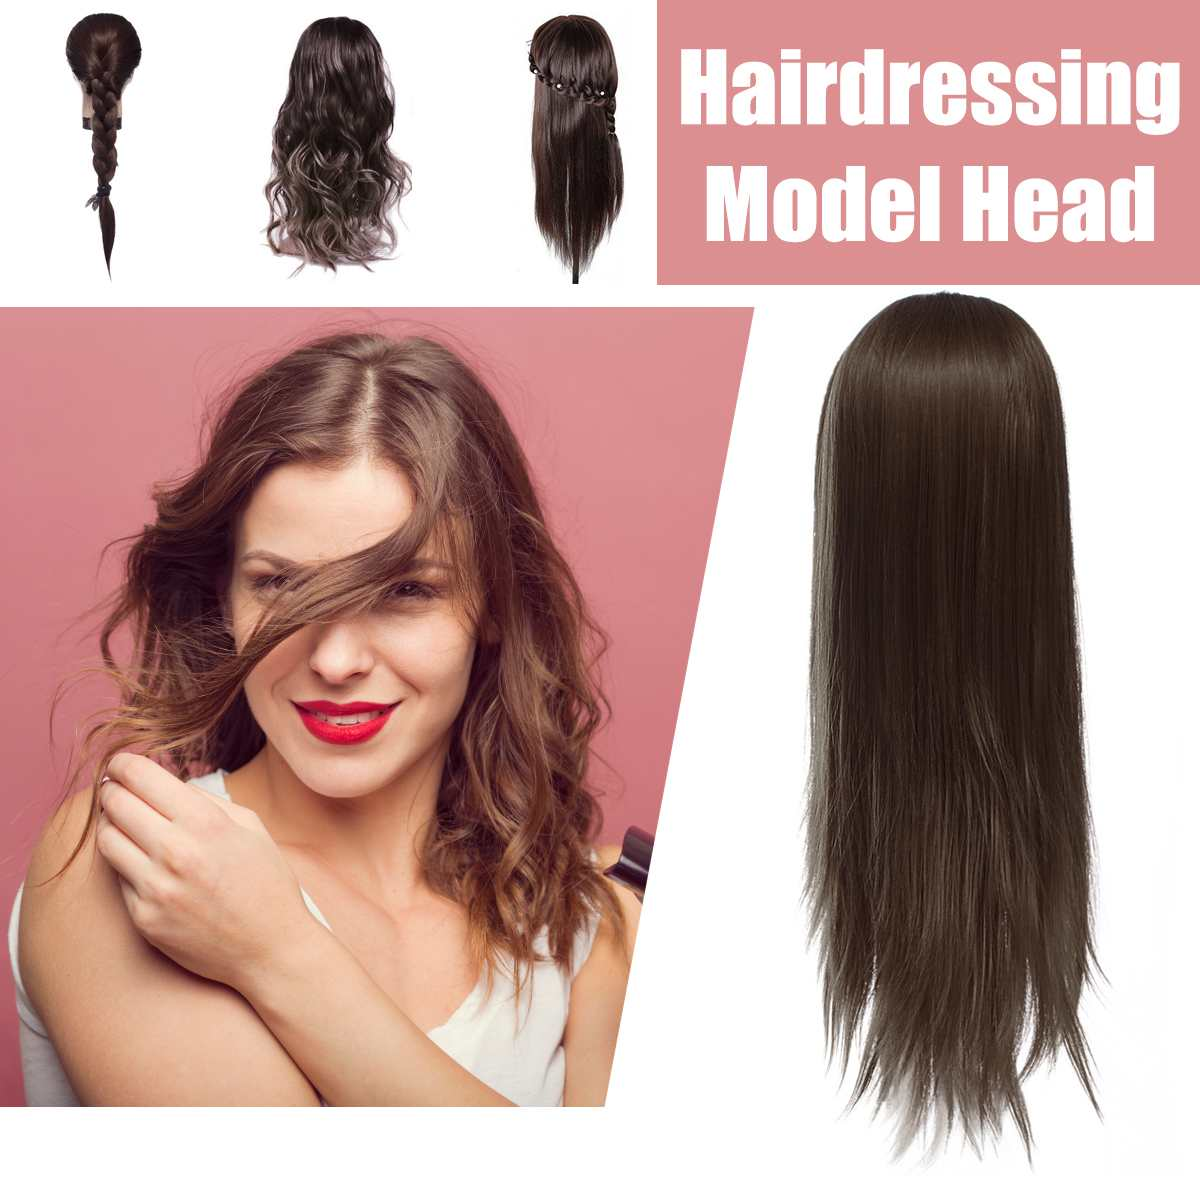 Professional Long Hair Hairdressing Training Practice Mannequin Practice Head Salon Women Hairdresser Styling Head Mold Training image